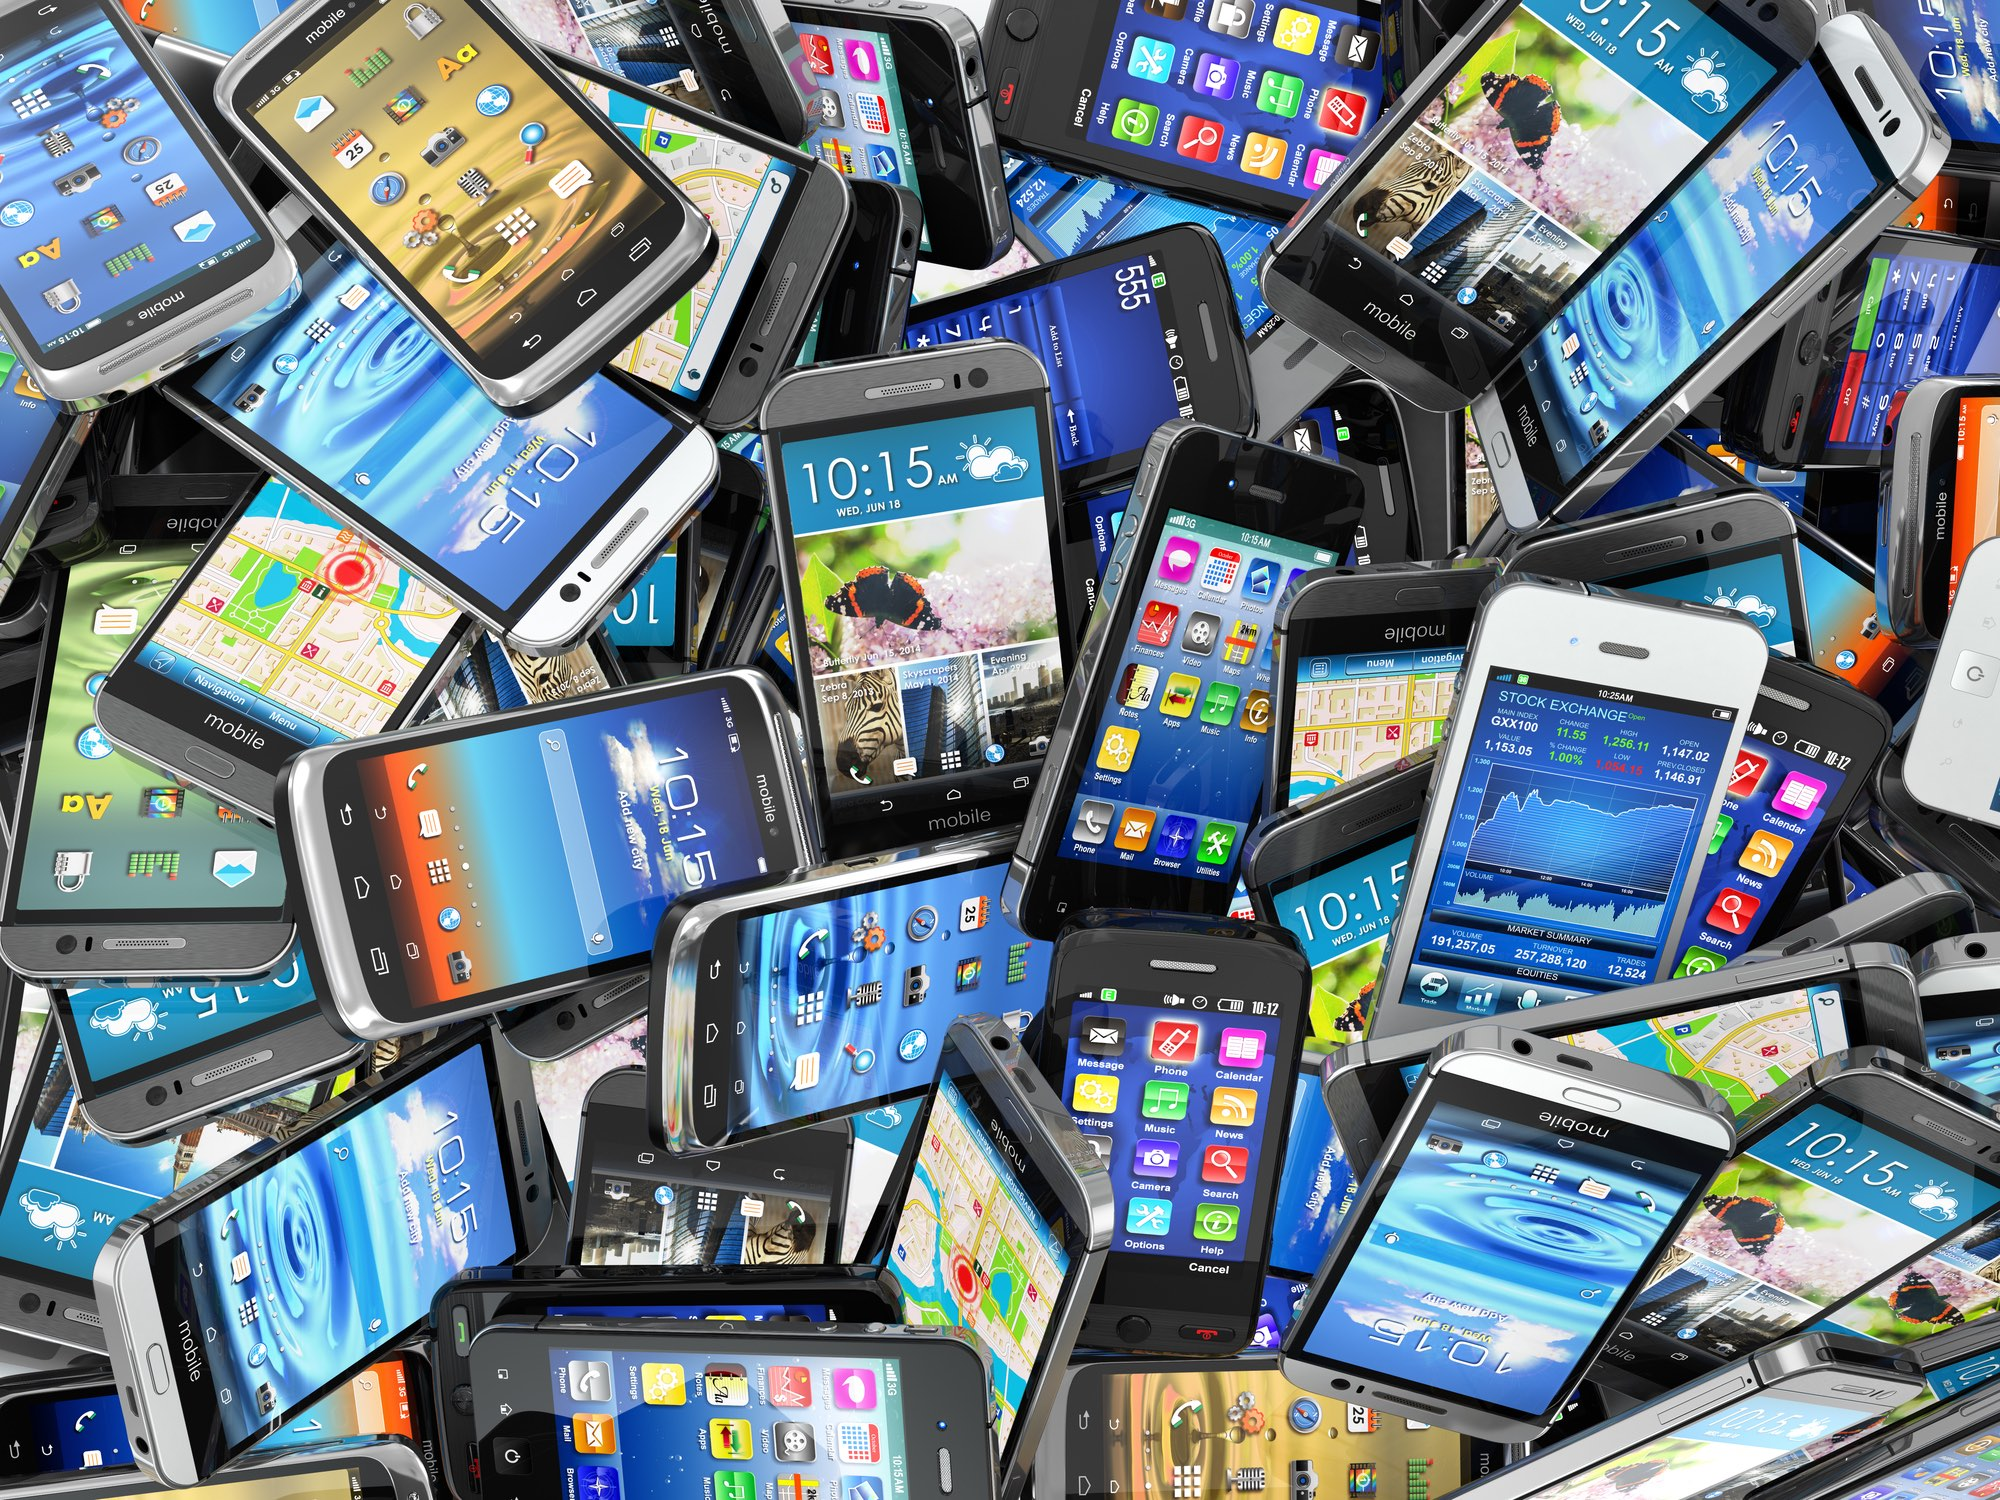 5 Things to Consider Before Buying a Smartphone or Tablet